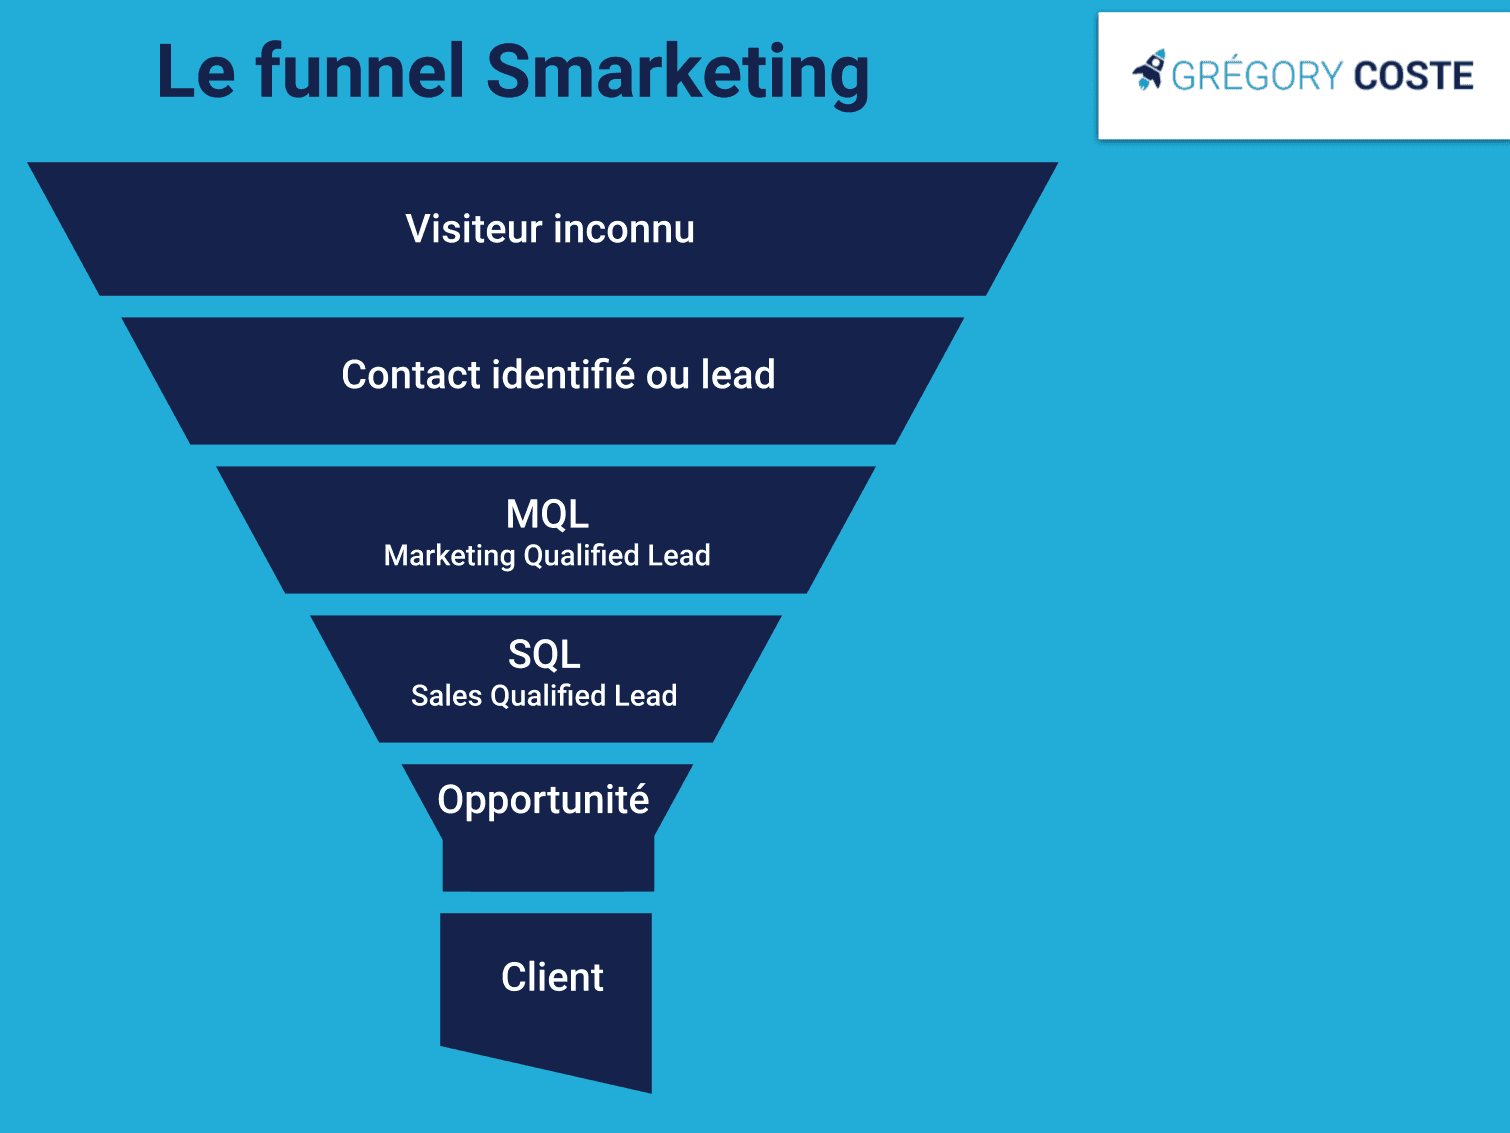 Le funnel Smarketing